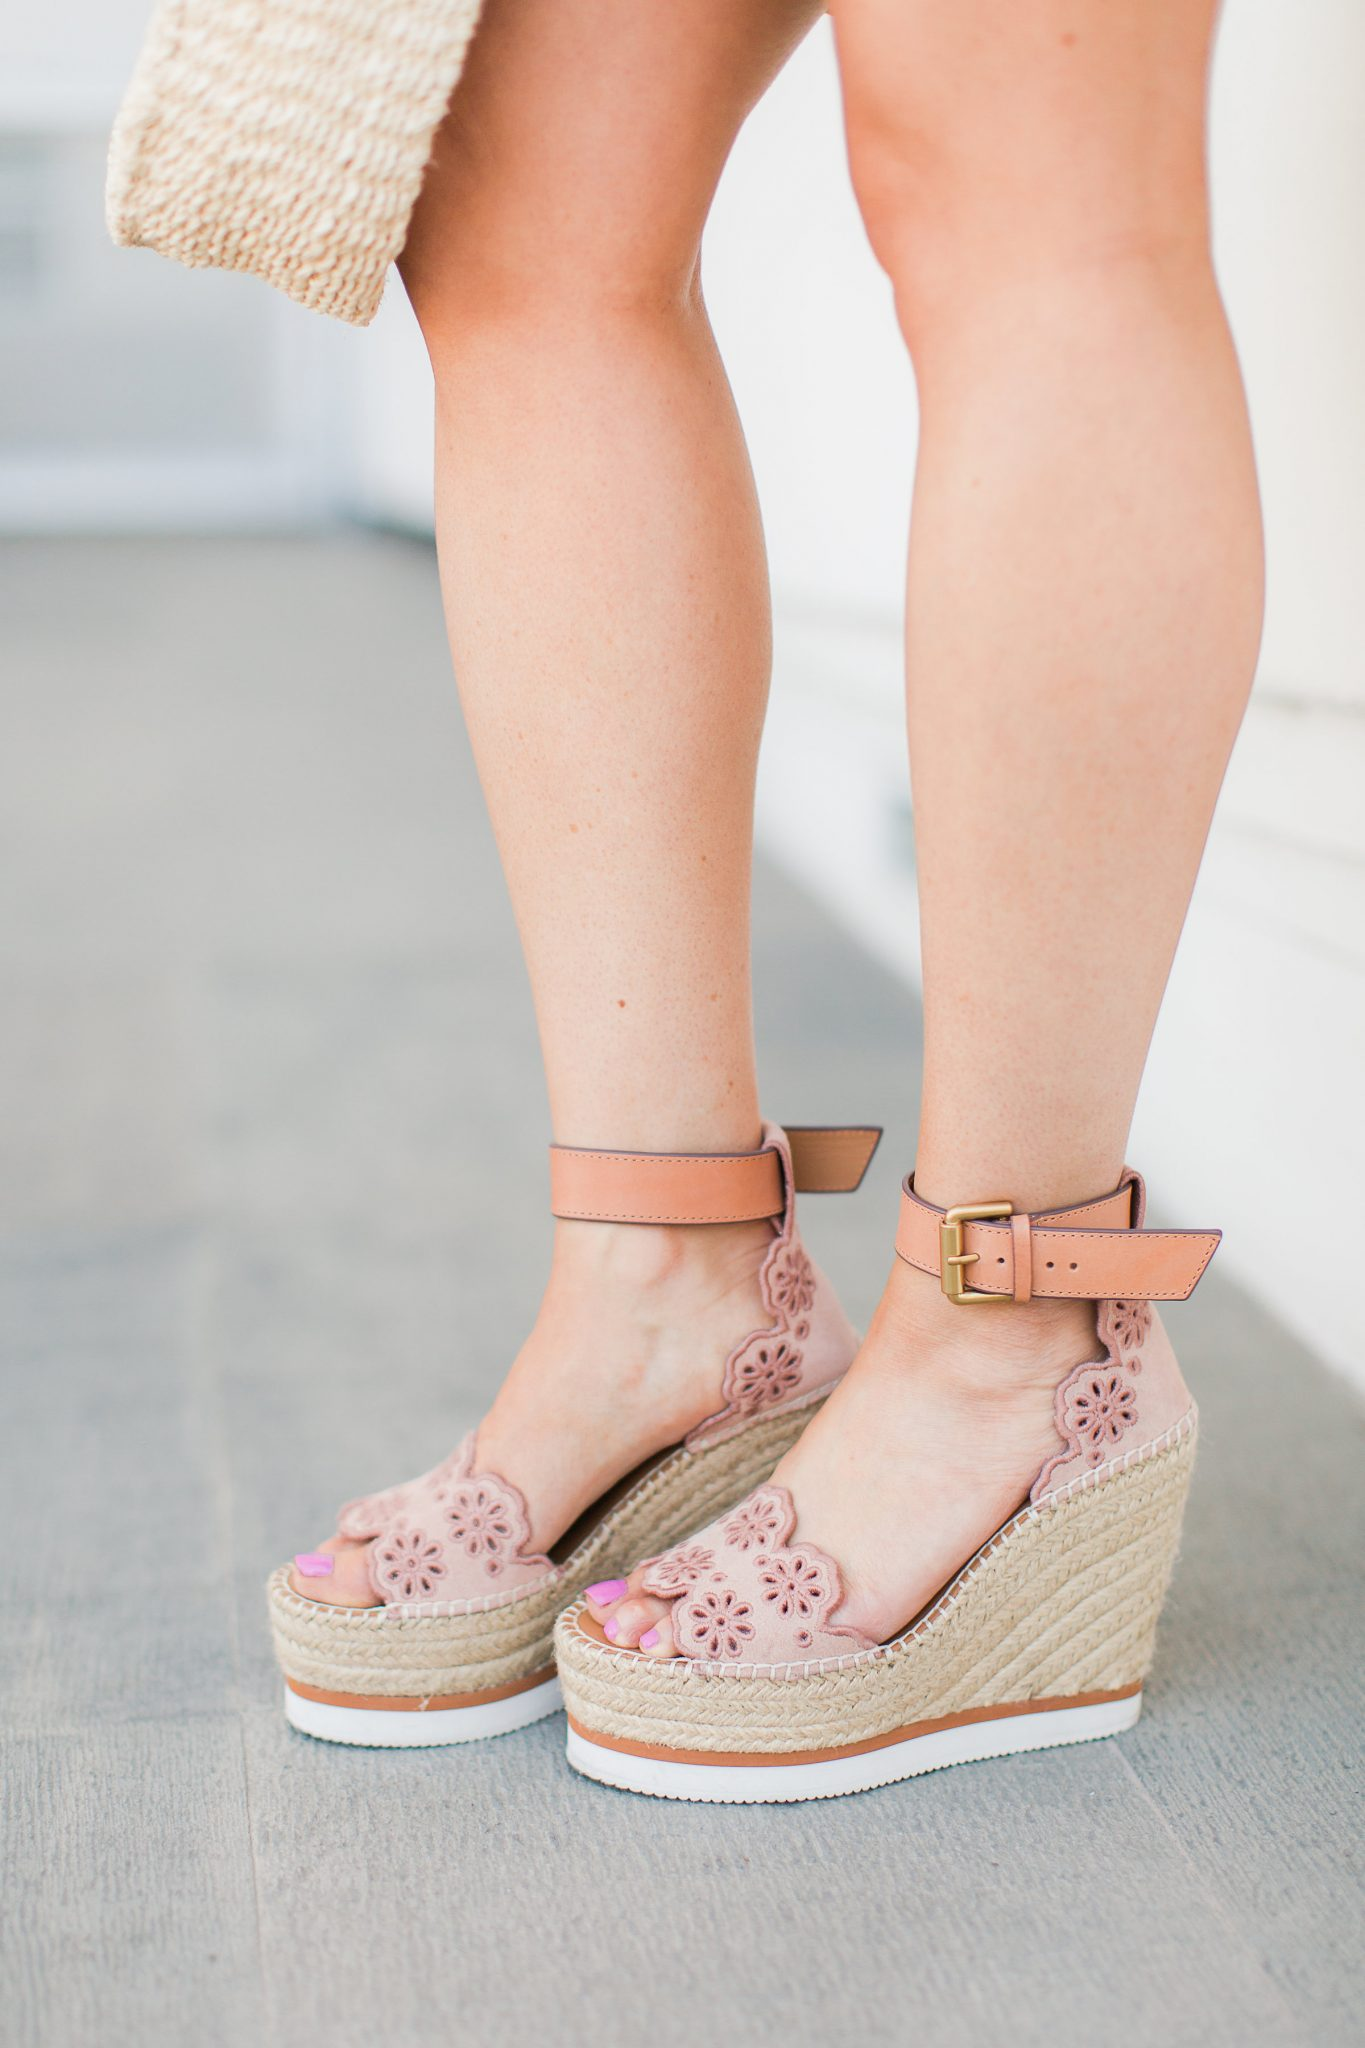 See by Chloe espadrille wedges by popular Orange County fashion blogger Maxie Elise